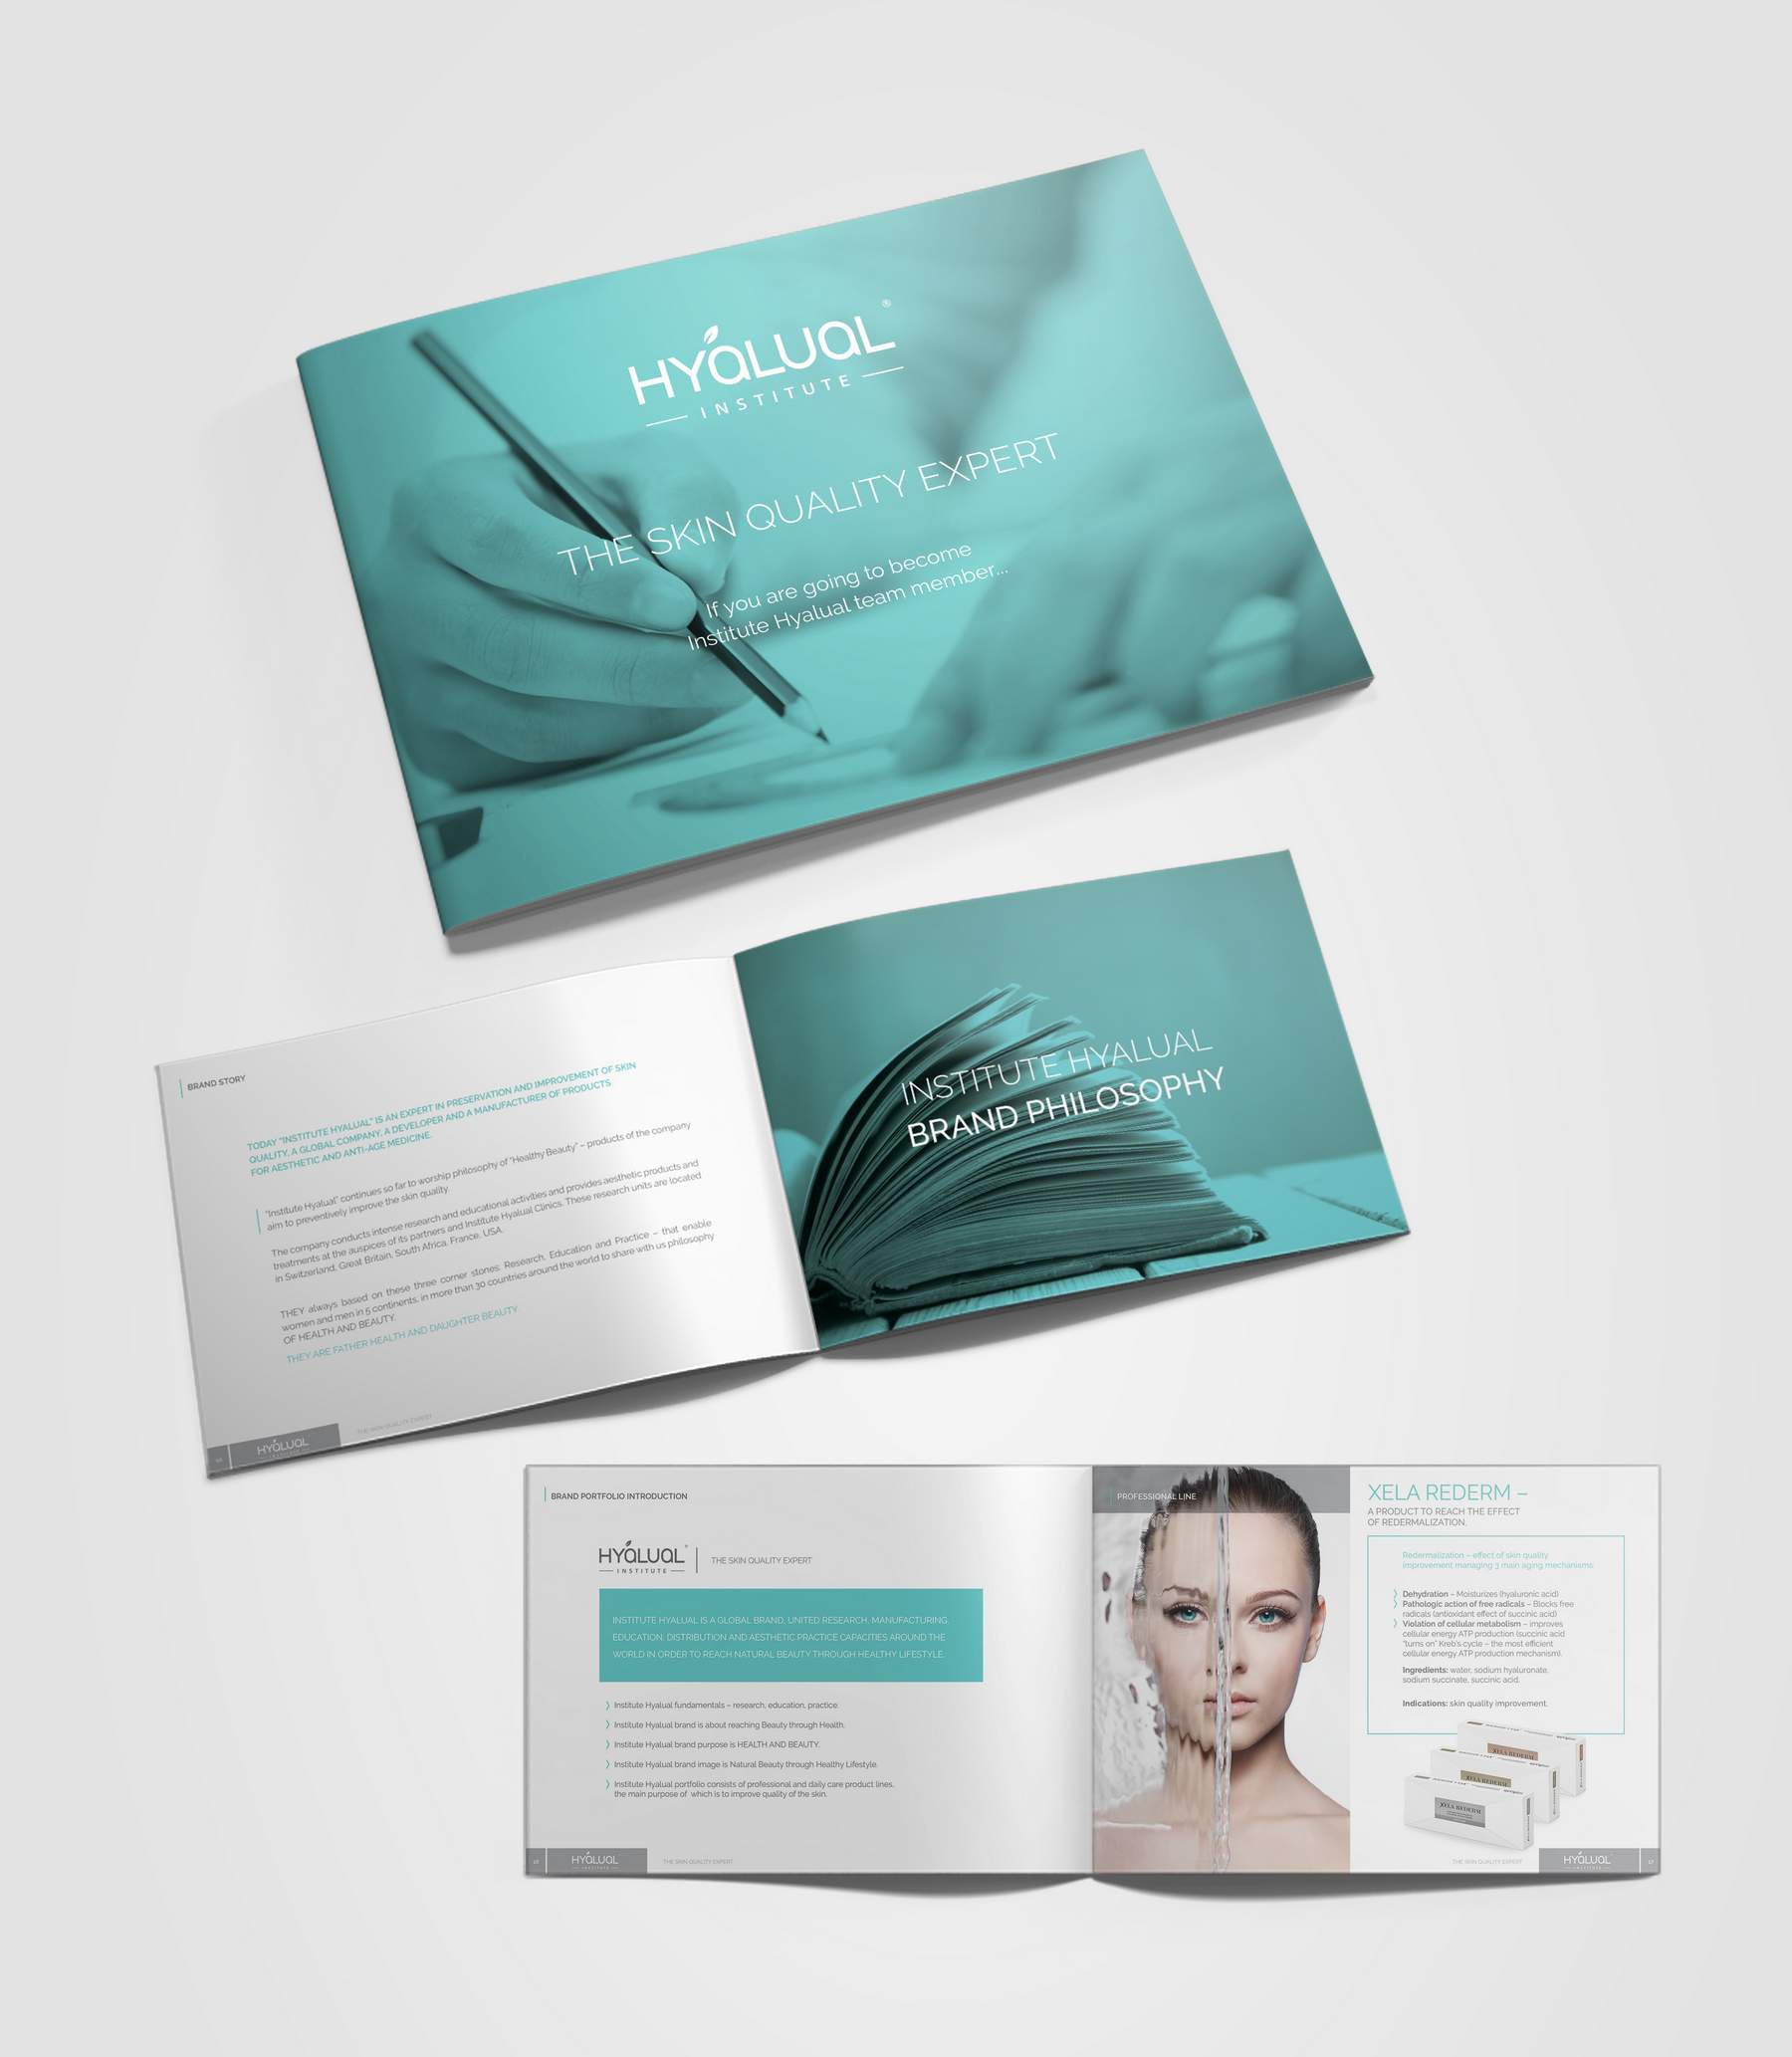 Hyalual catalogue design portfolio